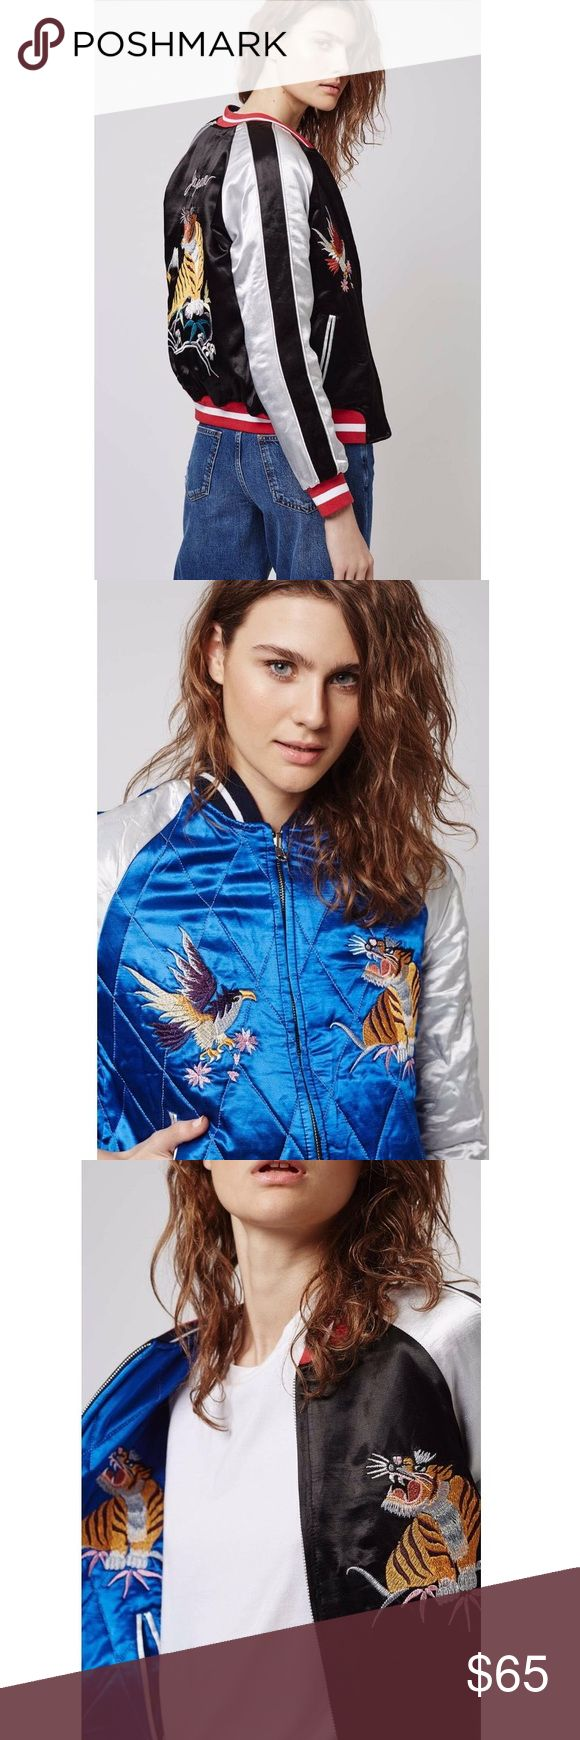 Topshop Reversible Embroidered Bomber Jacket Beautiful embroidery, great condition Topshop Jackets & Coats